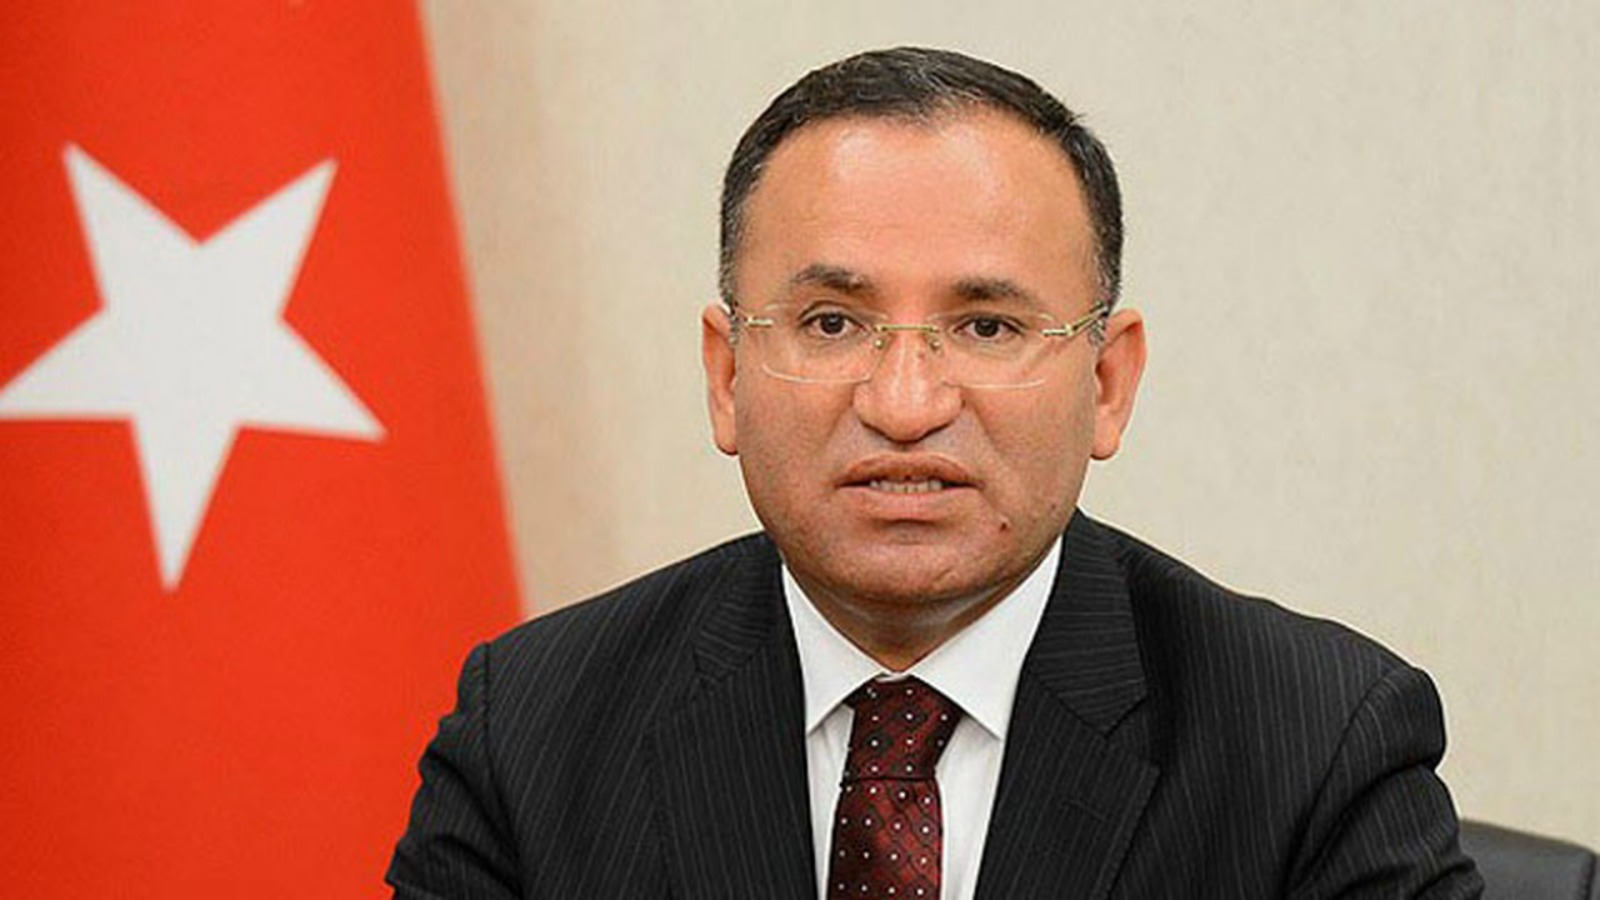 Bozdag speaks of 'civilian massacre'in Gaza and calls on Israel to end it